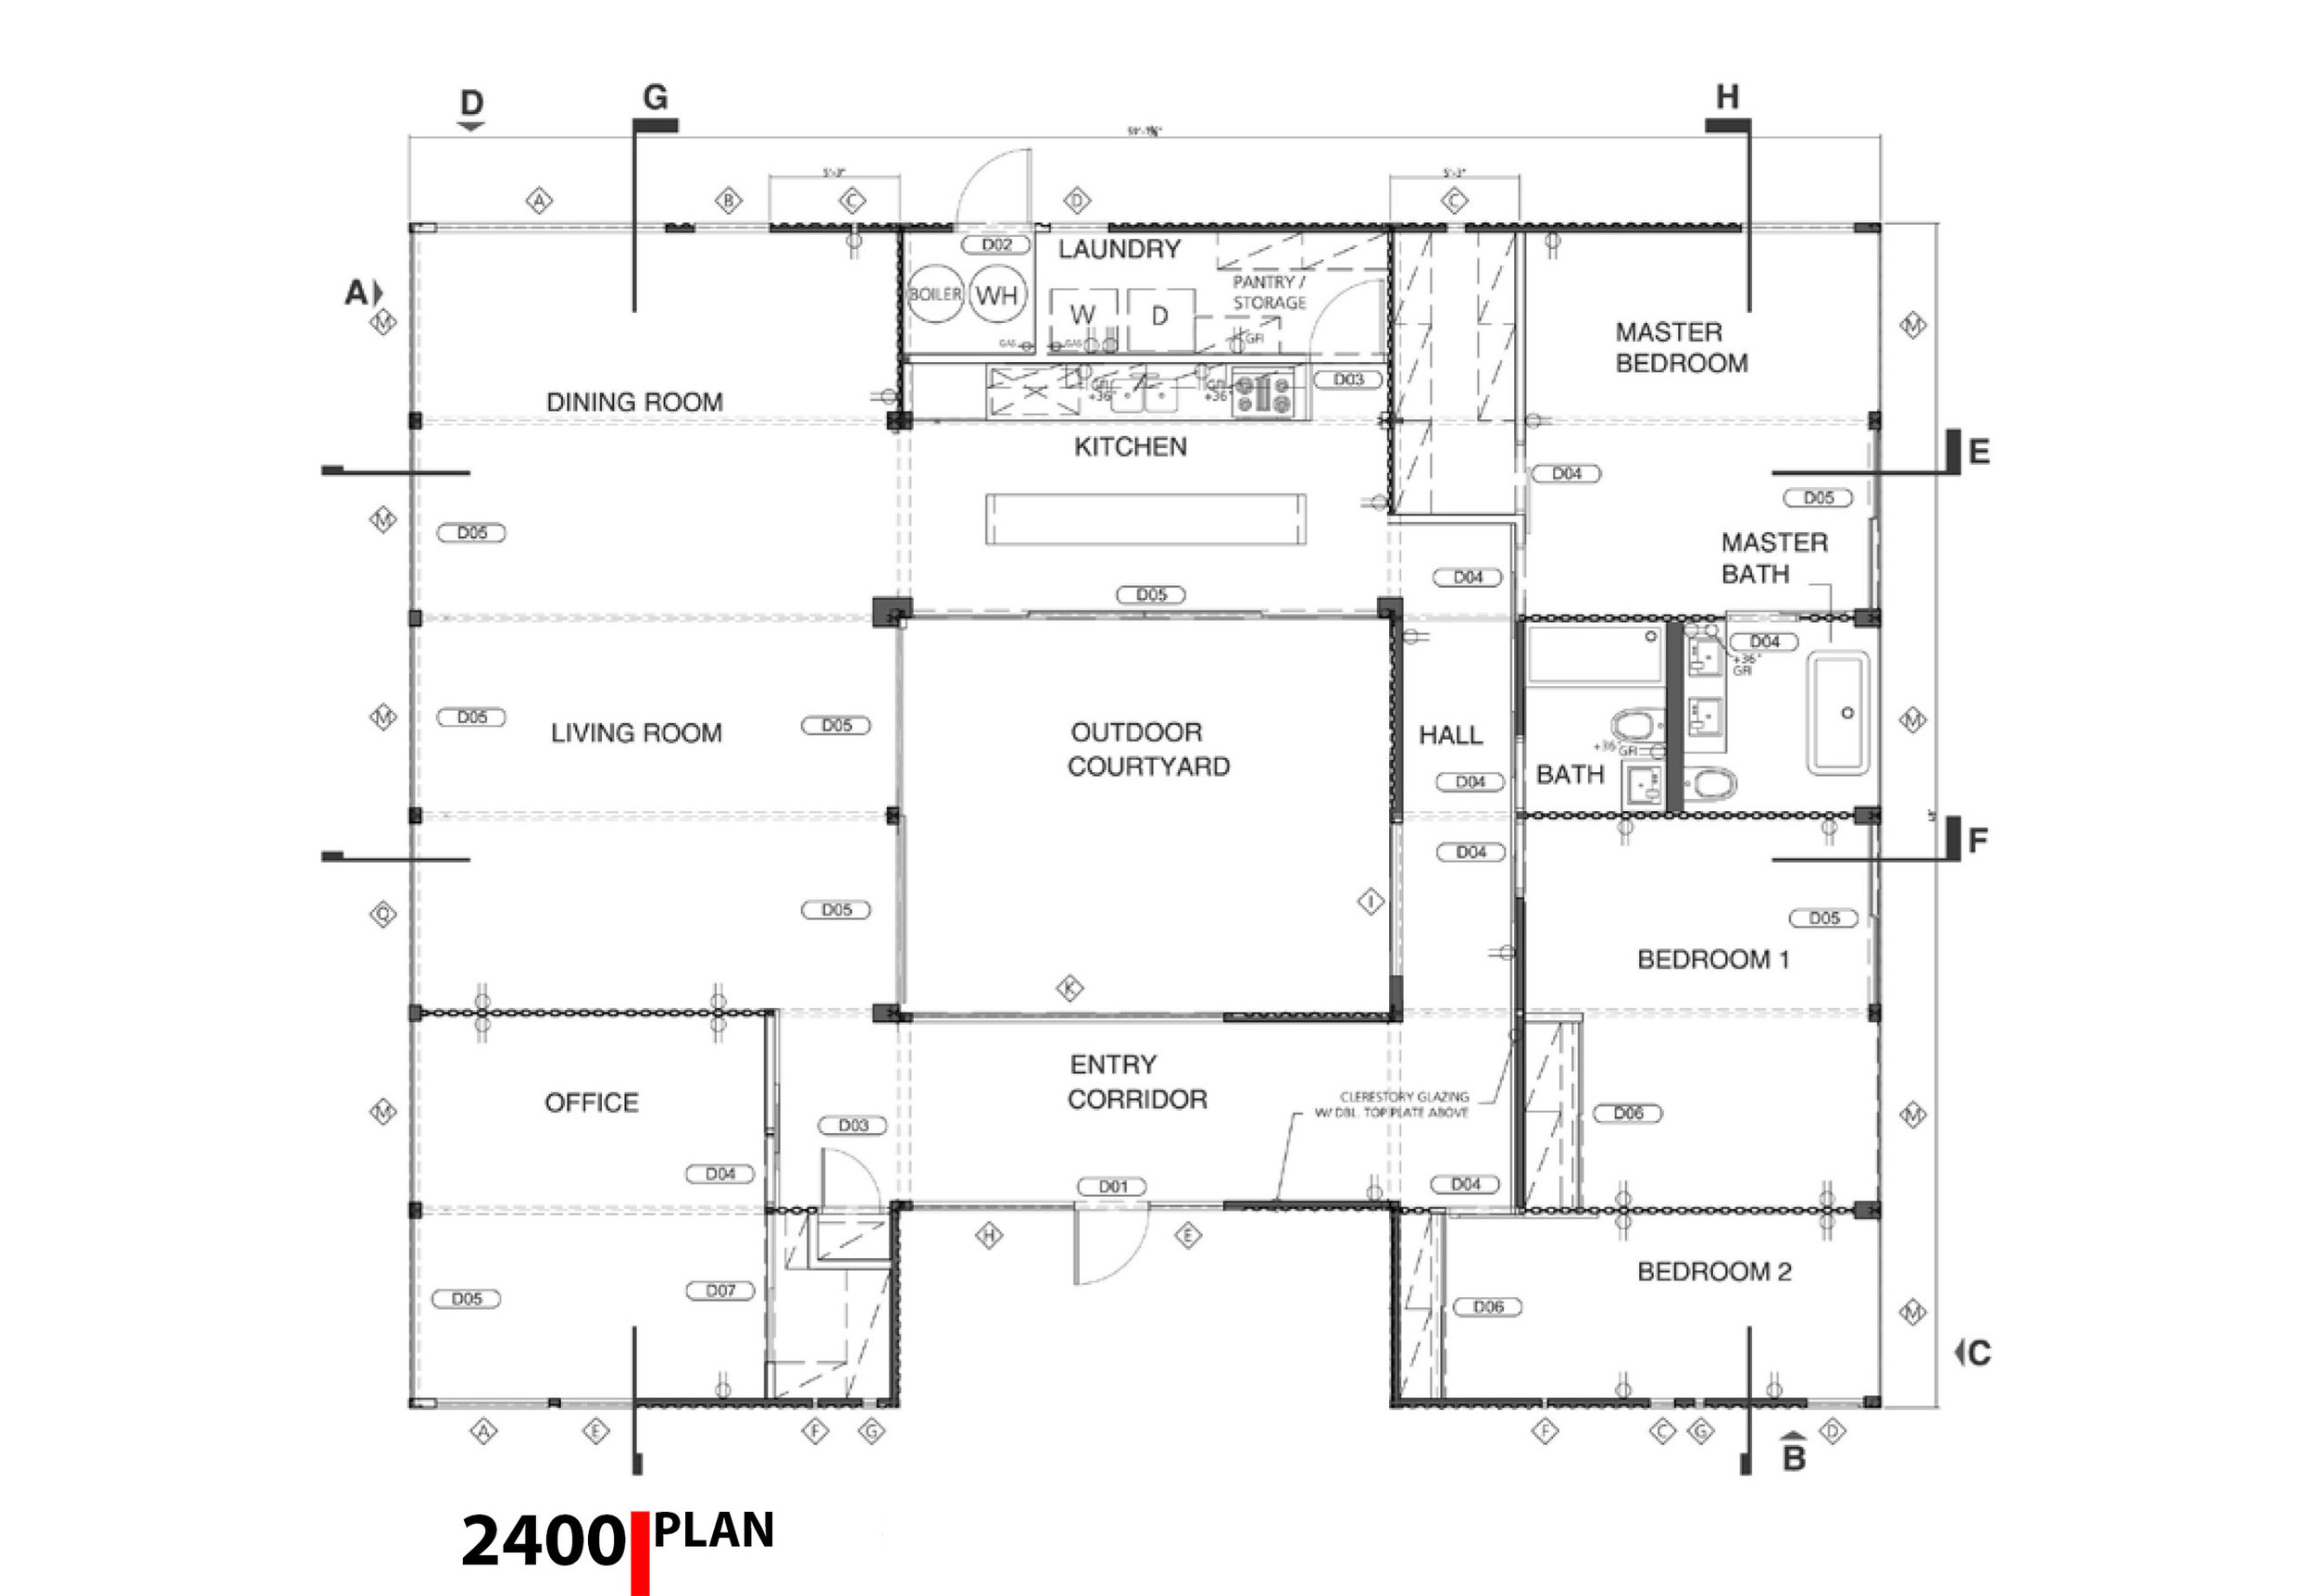 mod housing plan 2400.jpg